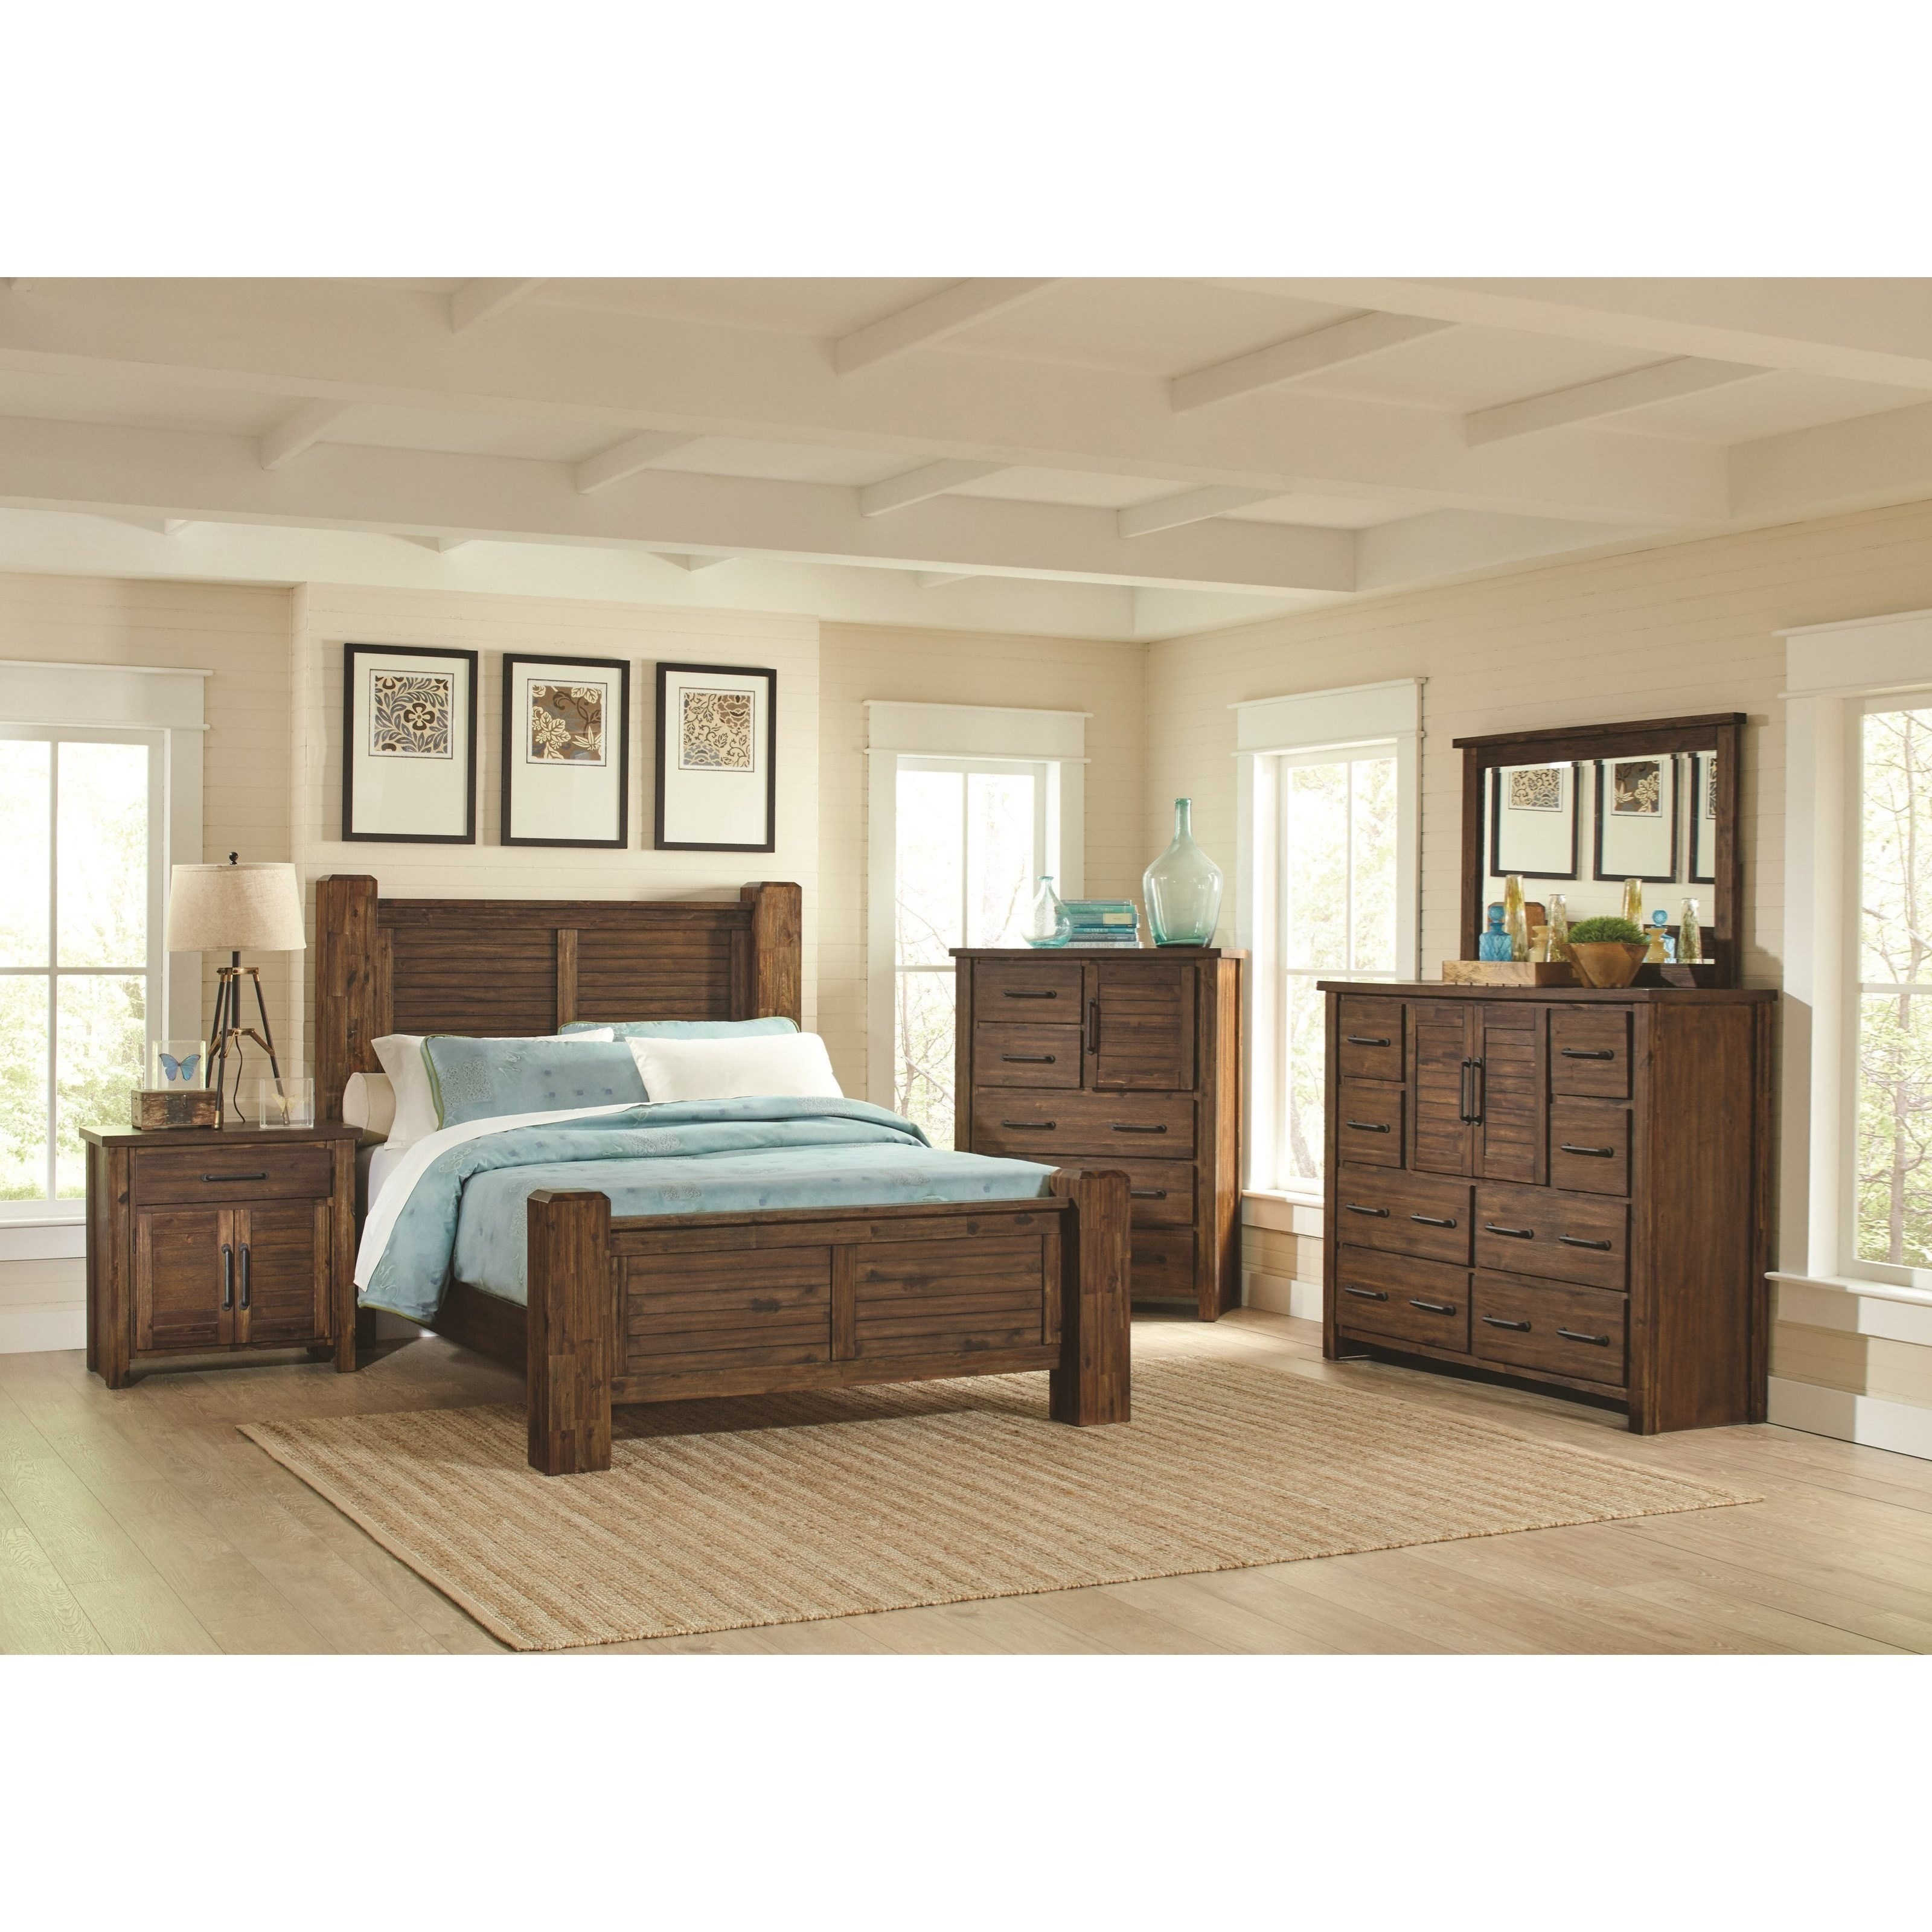 Coaster Sutter Creek Queen Bedroom Group